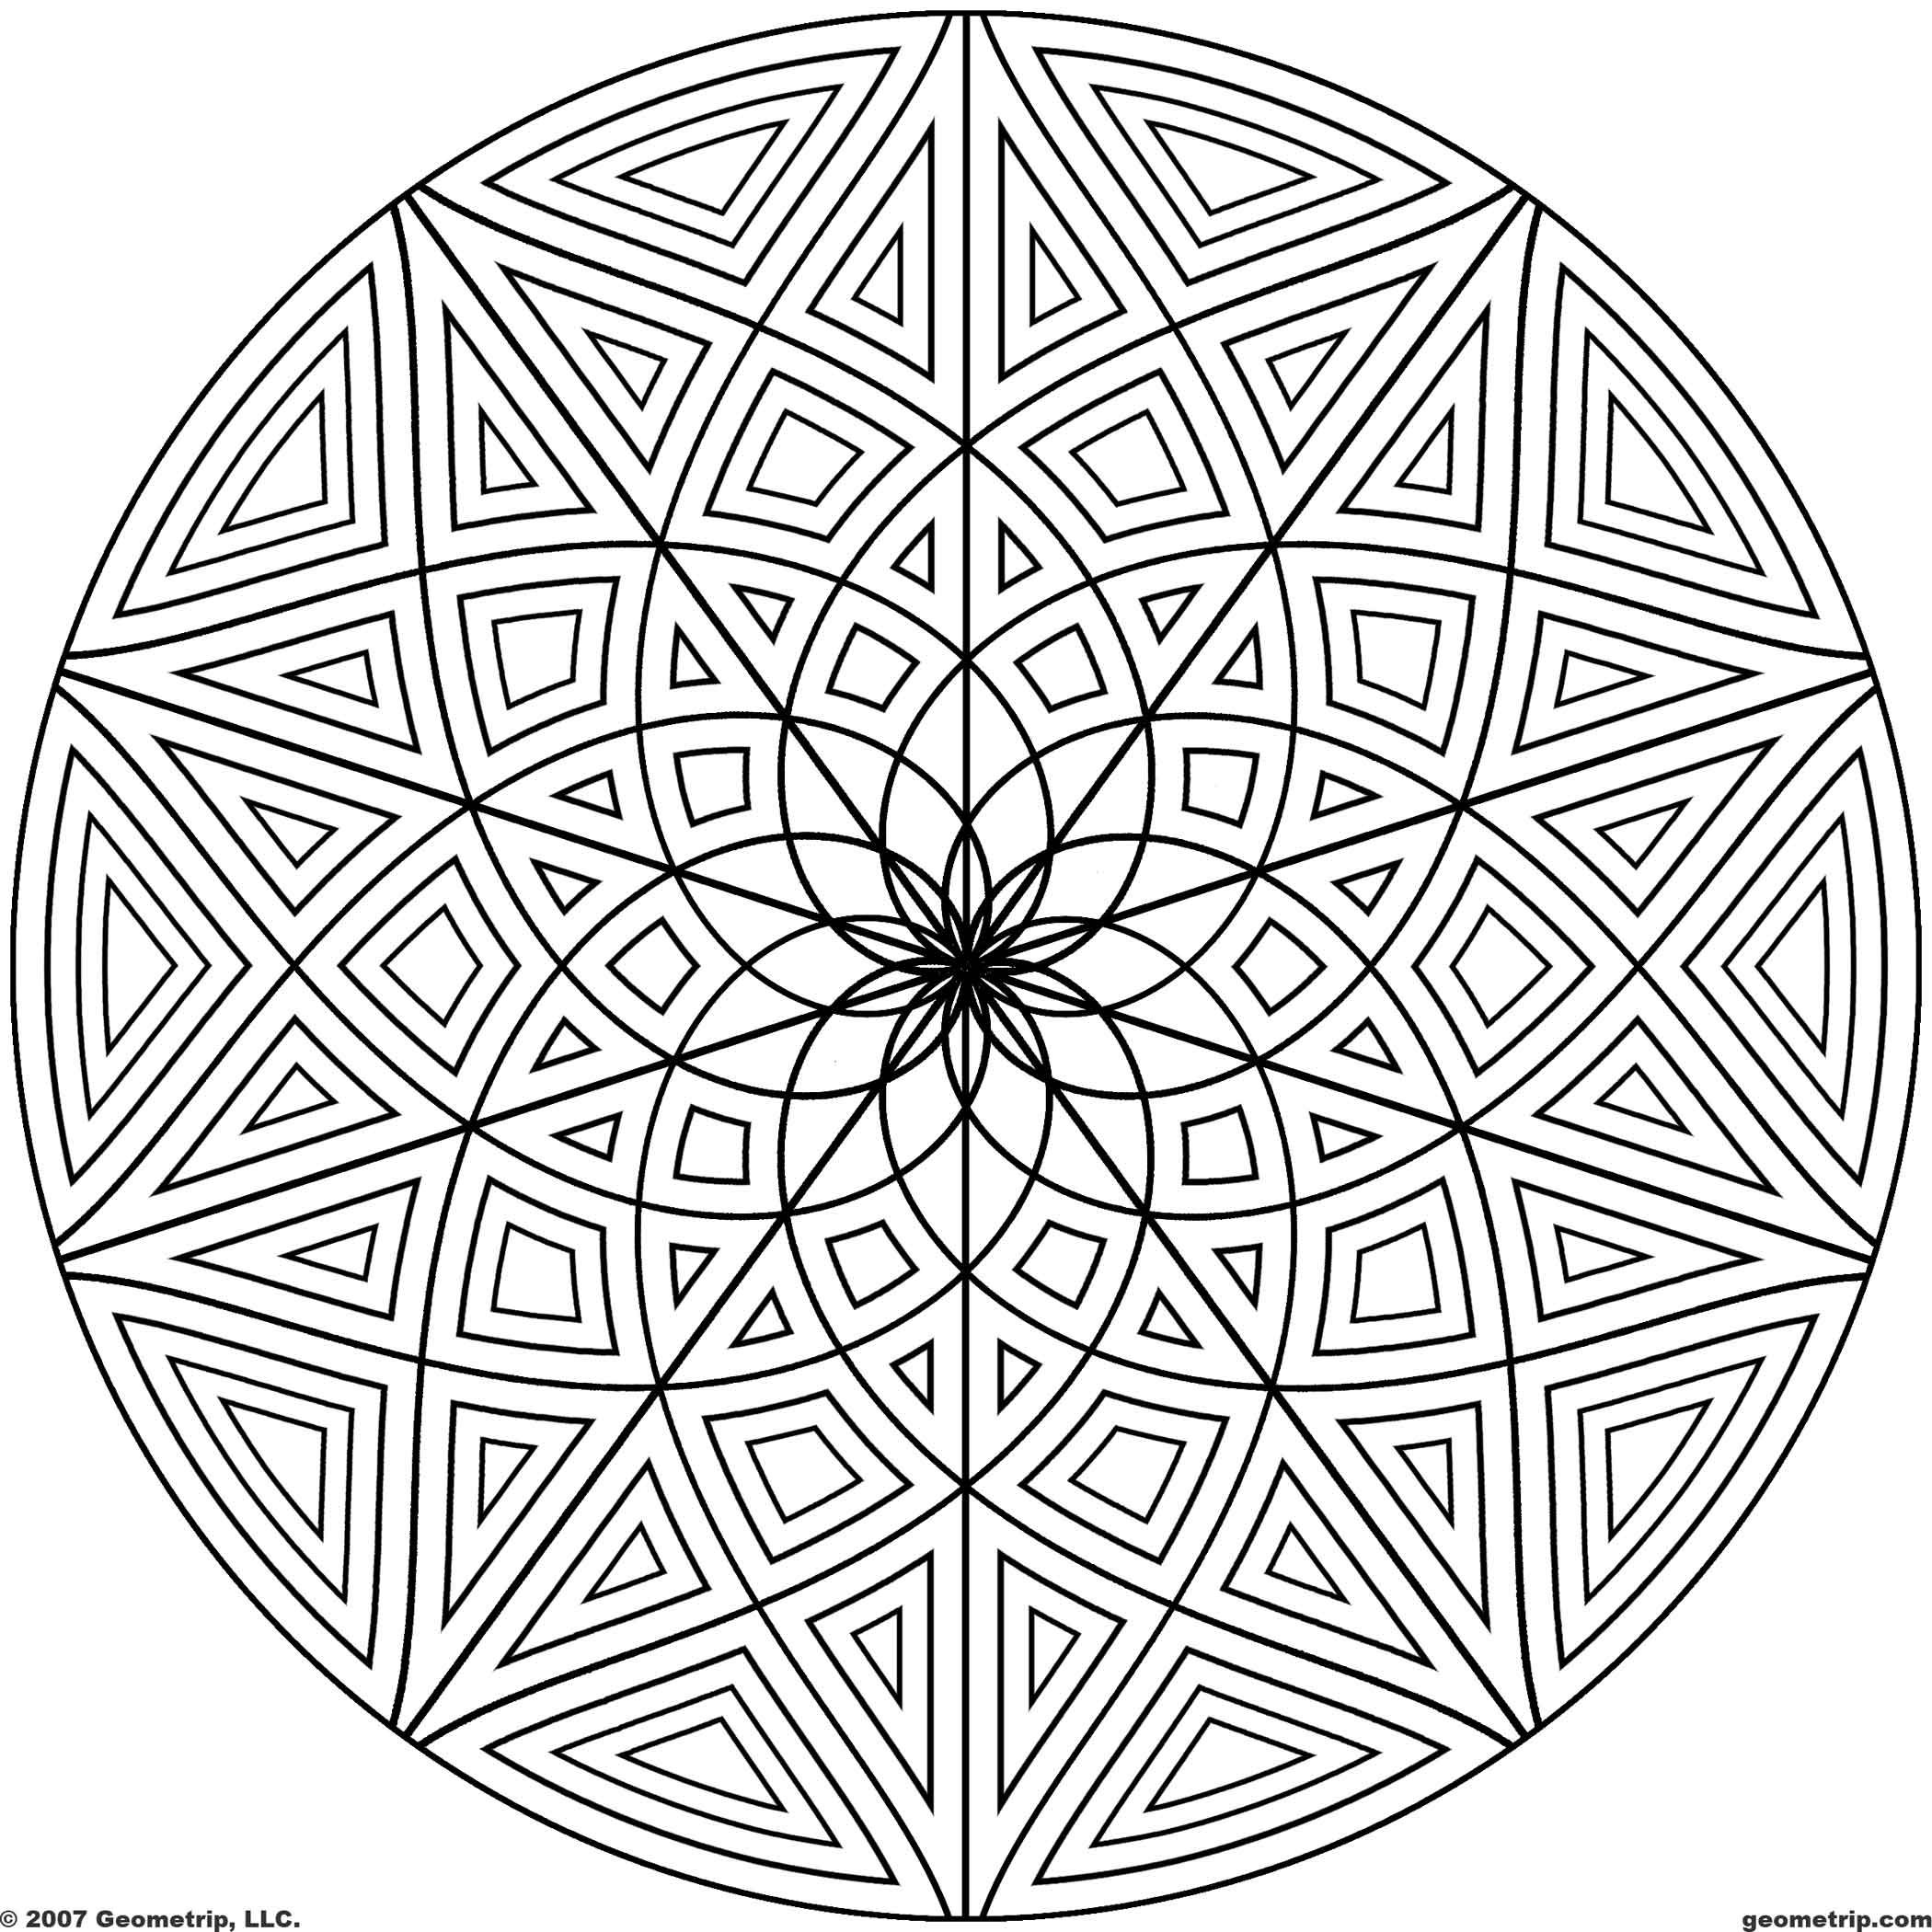 Geometrip Circles Set1 Sym10 Jpg 2100 2100 Geometric Coloring Pages Pattern Coloring Pages Mandala Coloring Pages